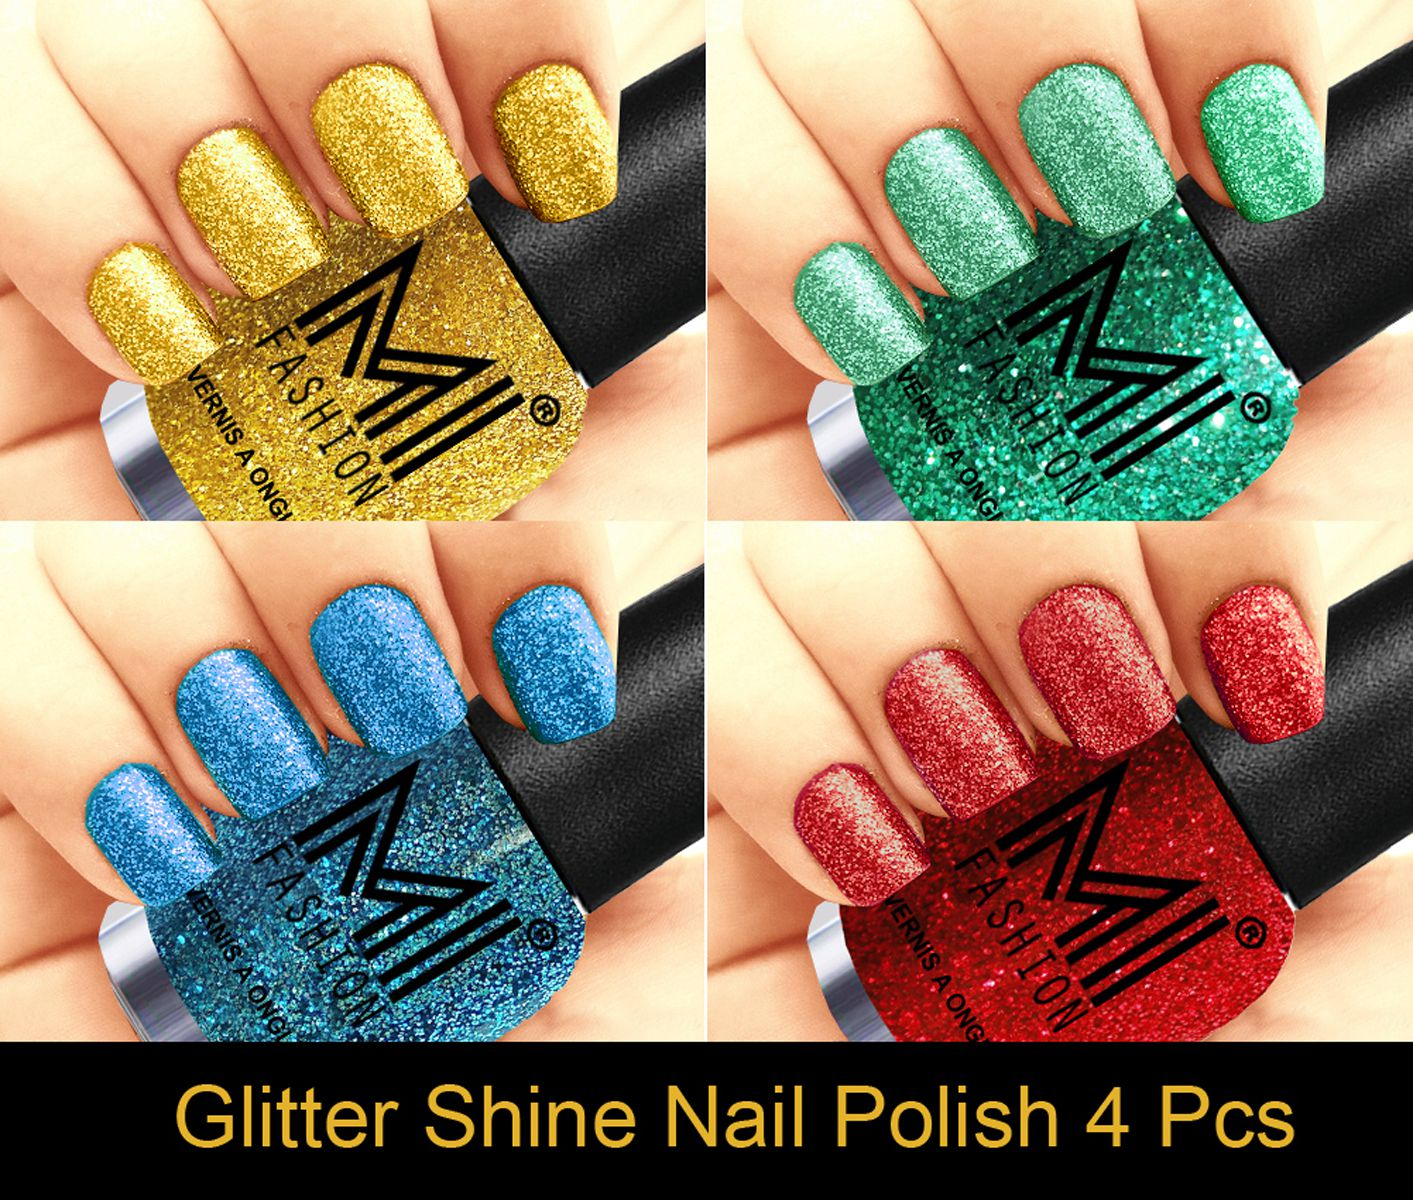 MI FASHION Long Lasting Professional Glitter Nail Polish Golden Gold,Radium,Sky Blue,Red Glitter 48 ml Pack of 4